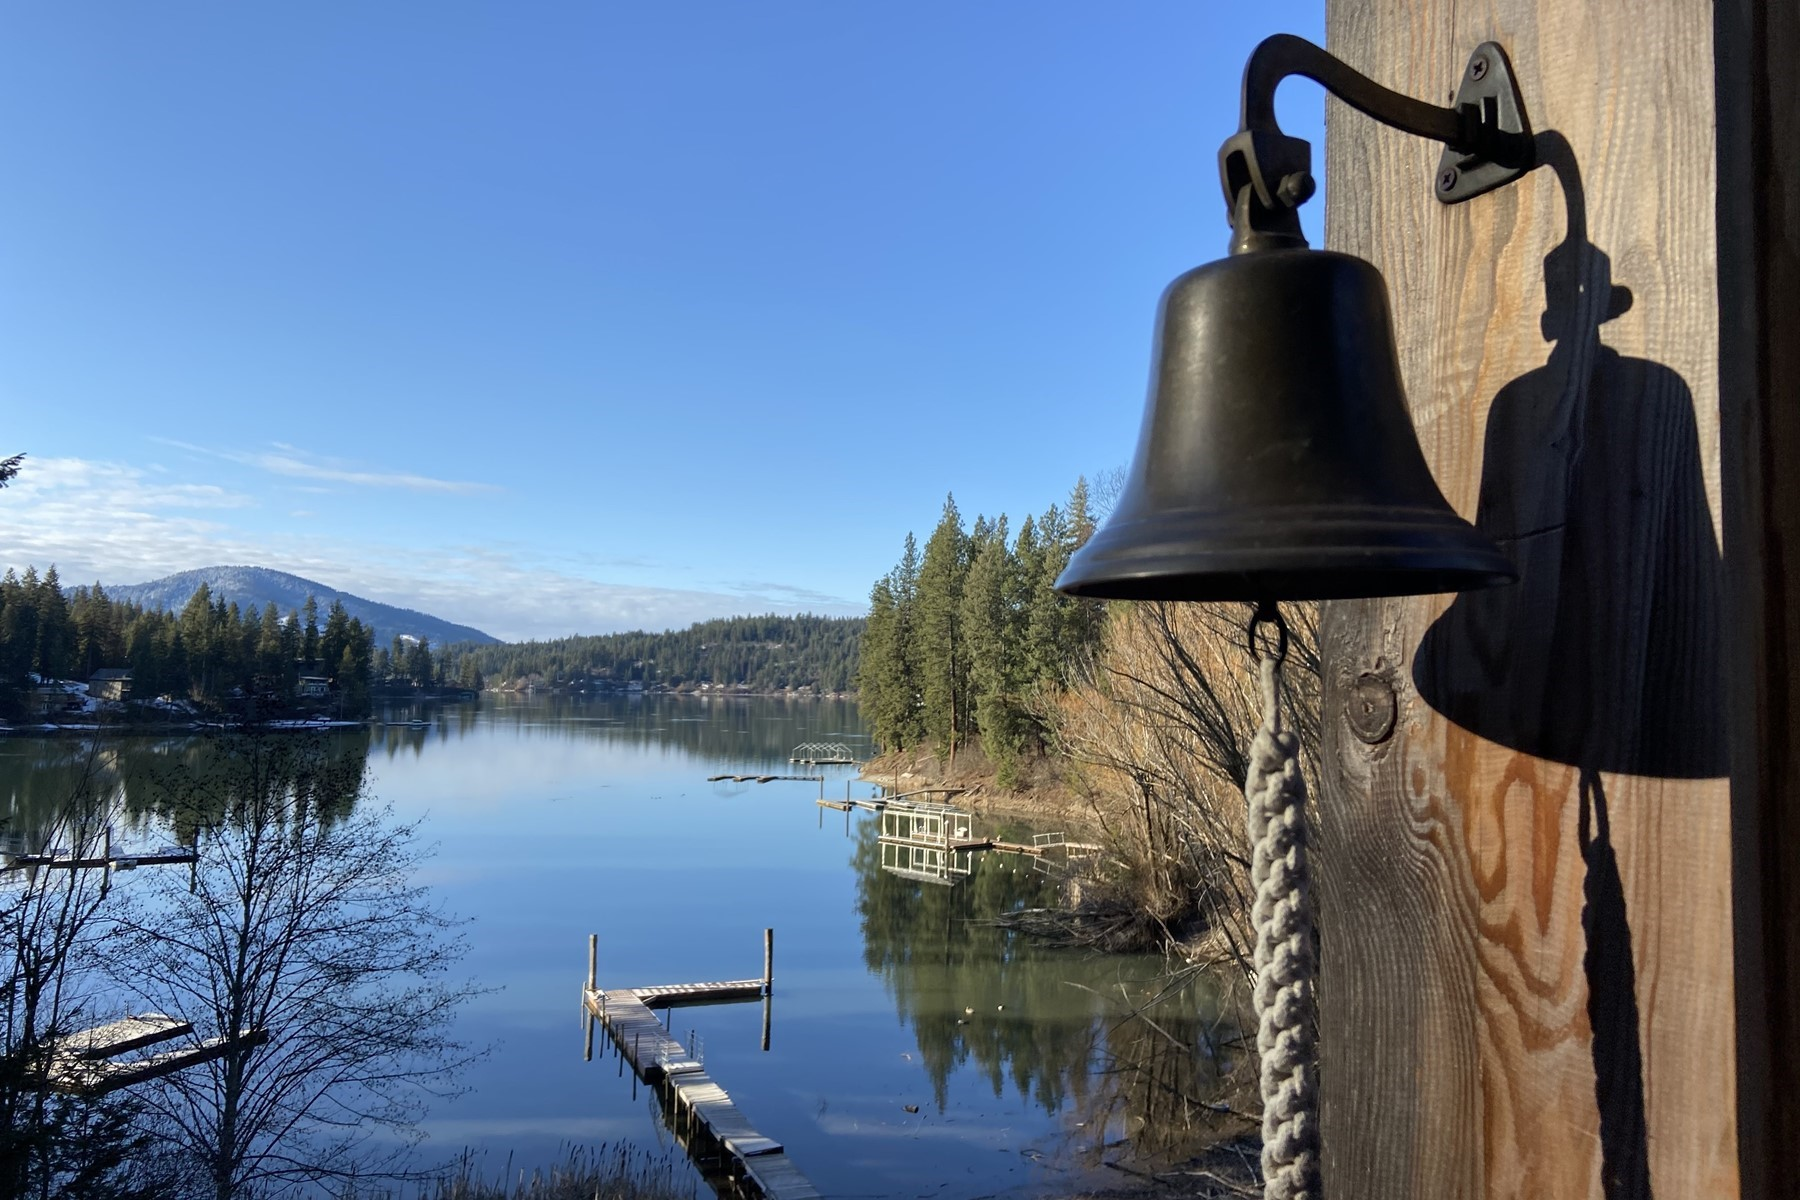 Single Family Homes for Sale at Hayden Lake Waterfront Acreage Lodge 31245 E Hayden Lake Rd Hayden, Idaho 83835 United States